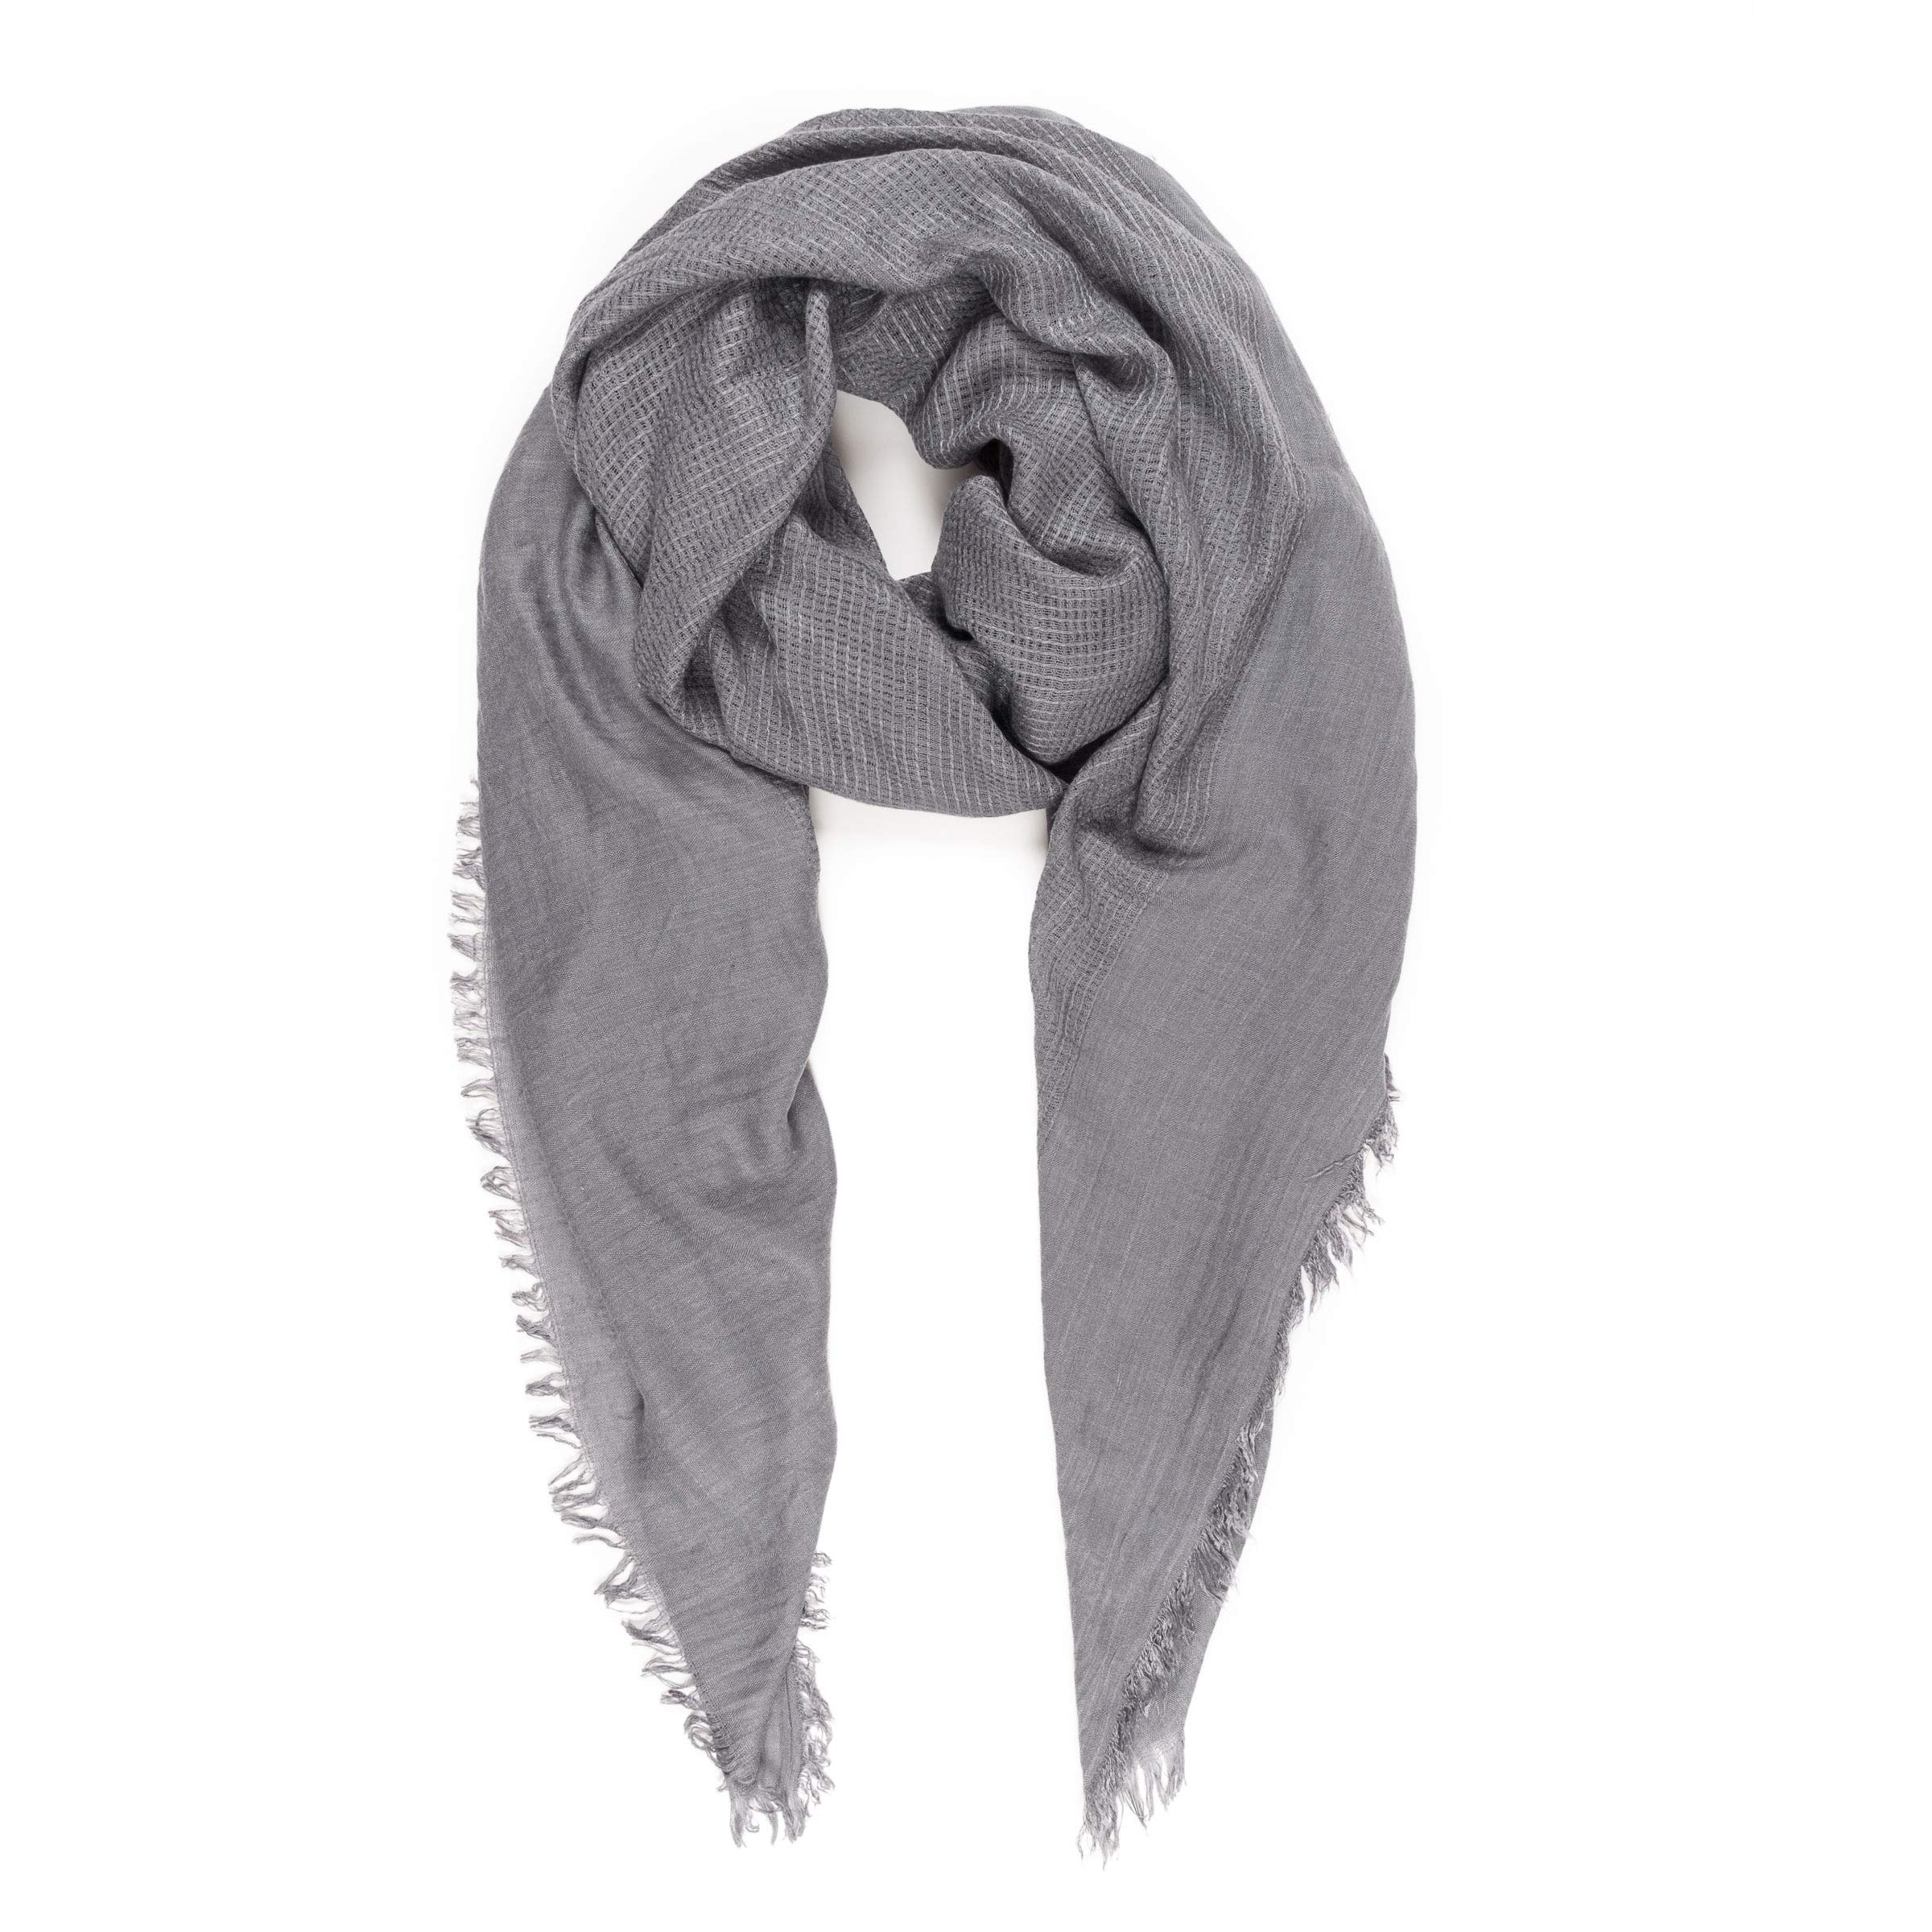 Scarves for Women: Lightweight Elegant Solid colors Fashion Scarf by MIMOSITO (Waffle Textured, Light Gray)